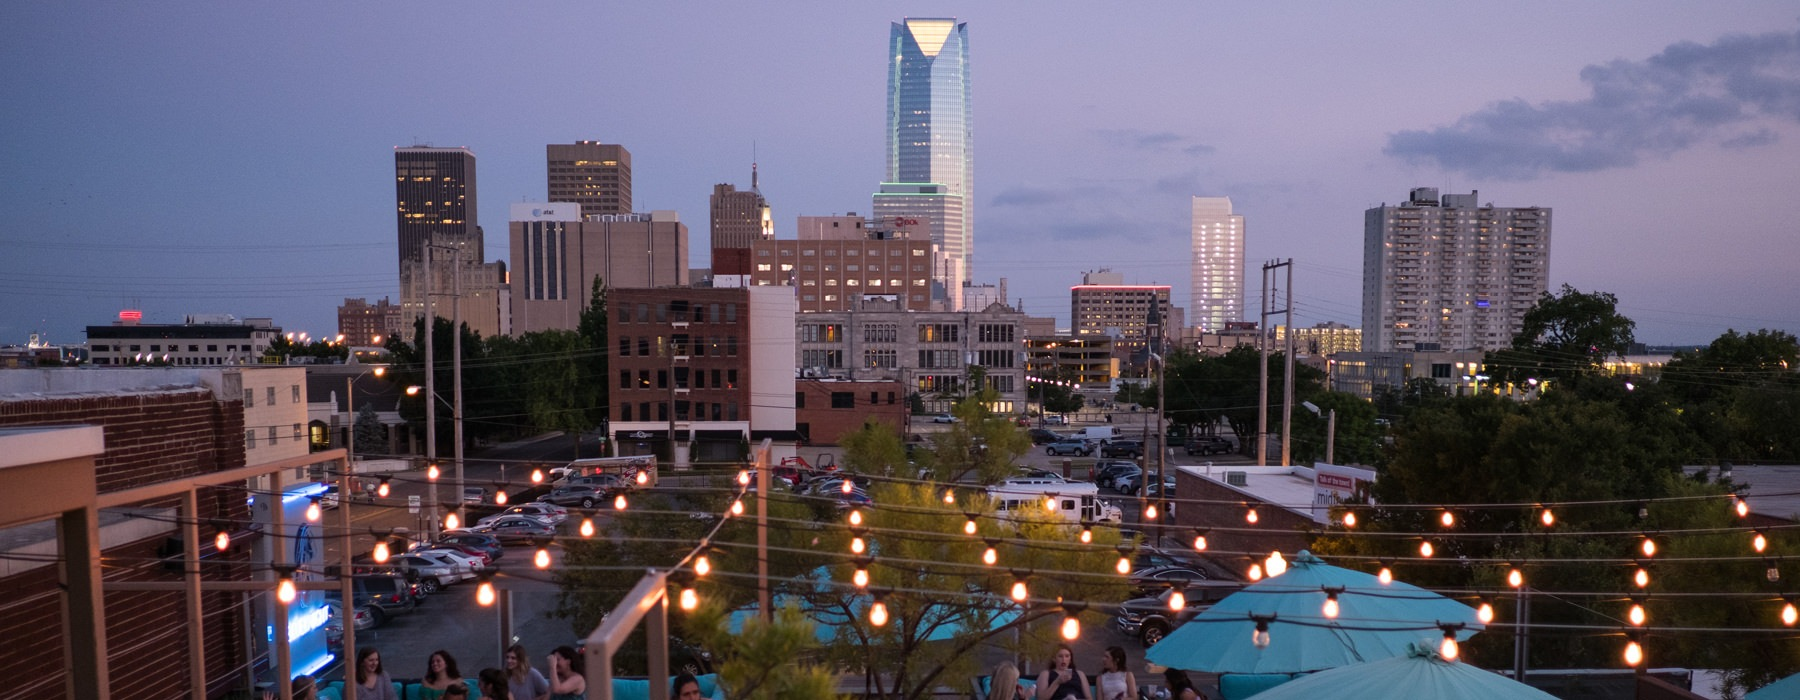 Oklahoma City skyline with people eating outside a neighborhood restaurant in the foreground